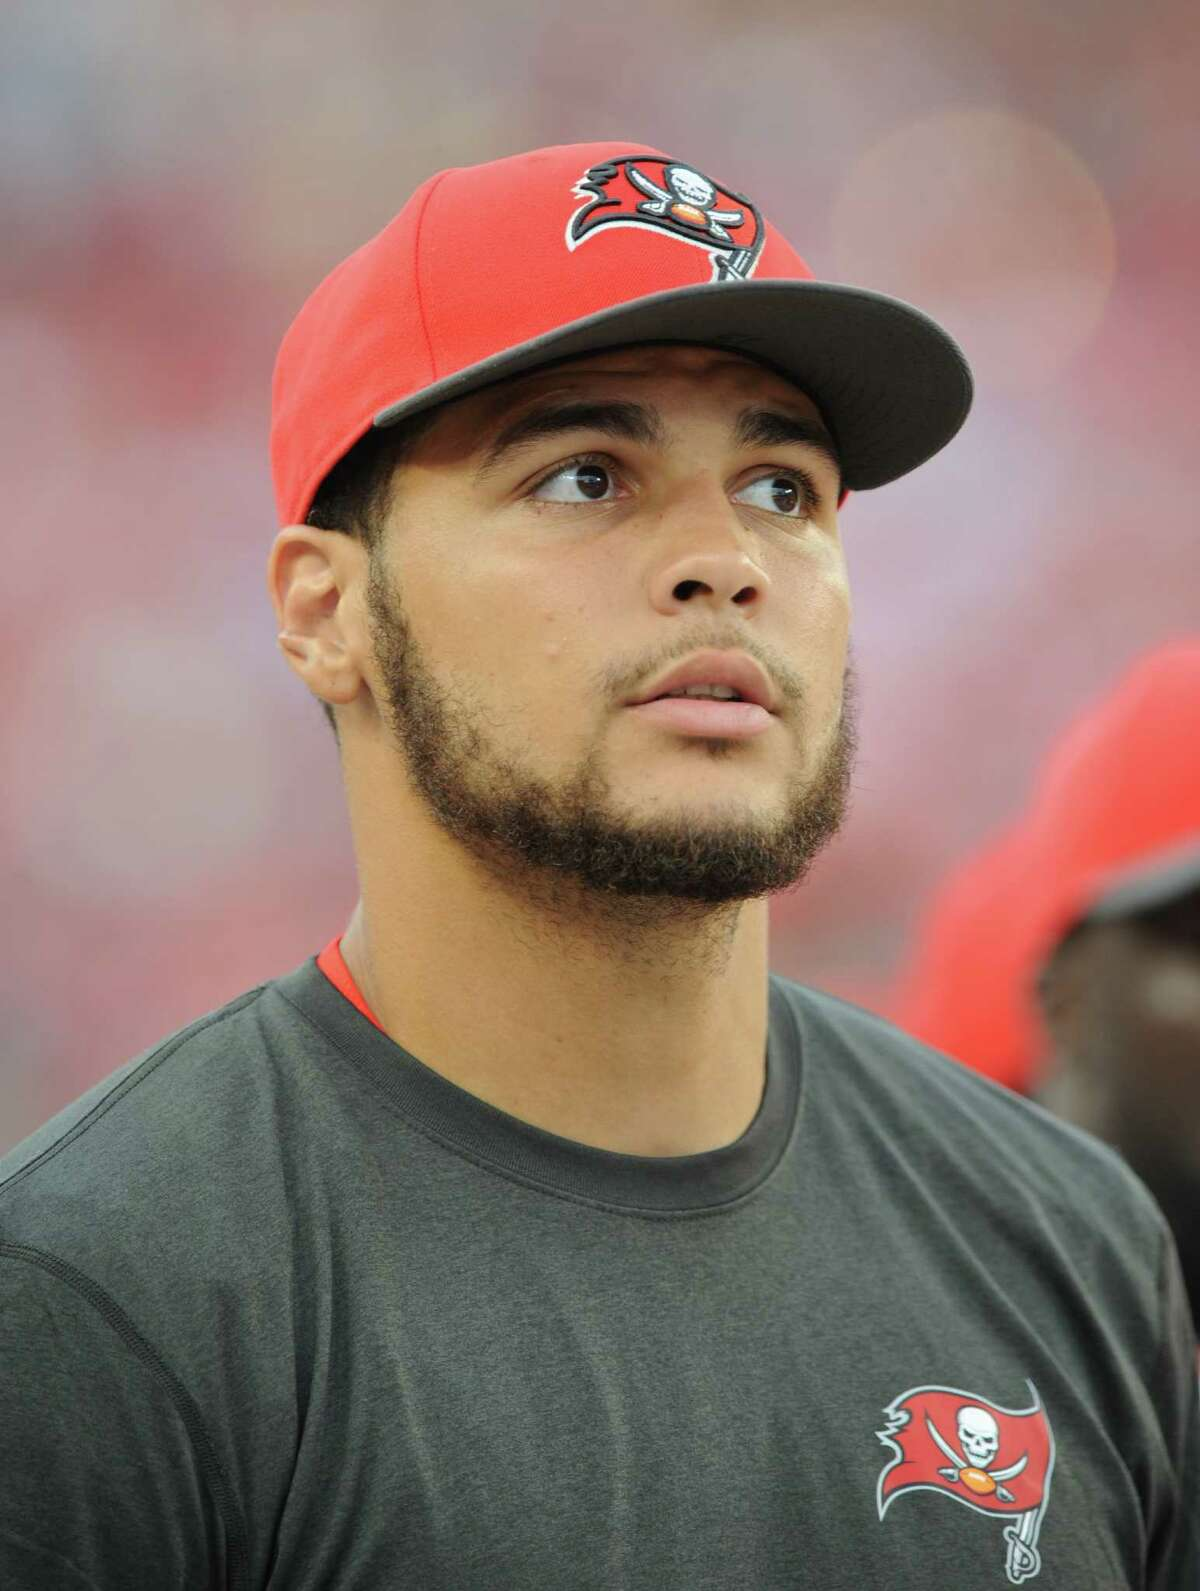 TAMPA, FL - SEPTEMBER 13: Wide receiver Mike Evans #13 of the Tampa Bay Buccaneers stands on the sidelines against the Tennessee Titans at Raymond James Stadium on September 13, 2015 in Tampa, Florida. (Photo by Cliff McBride/Getty Images)